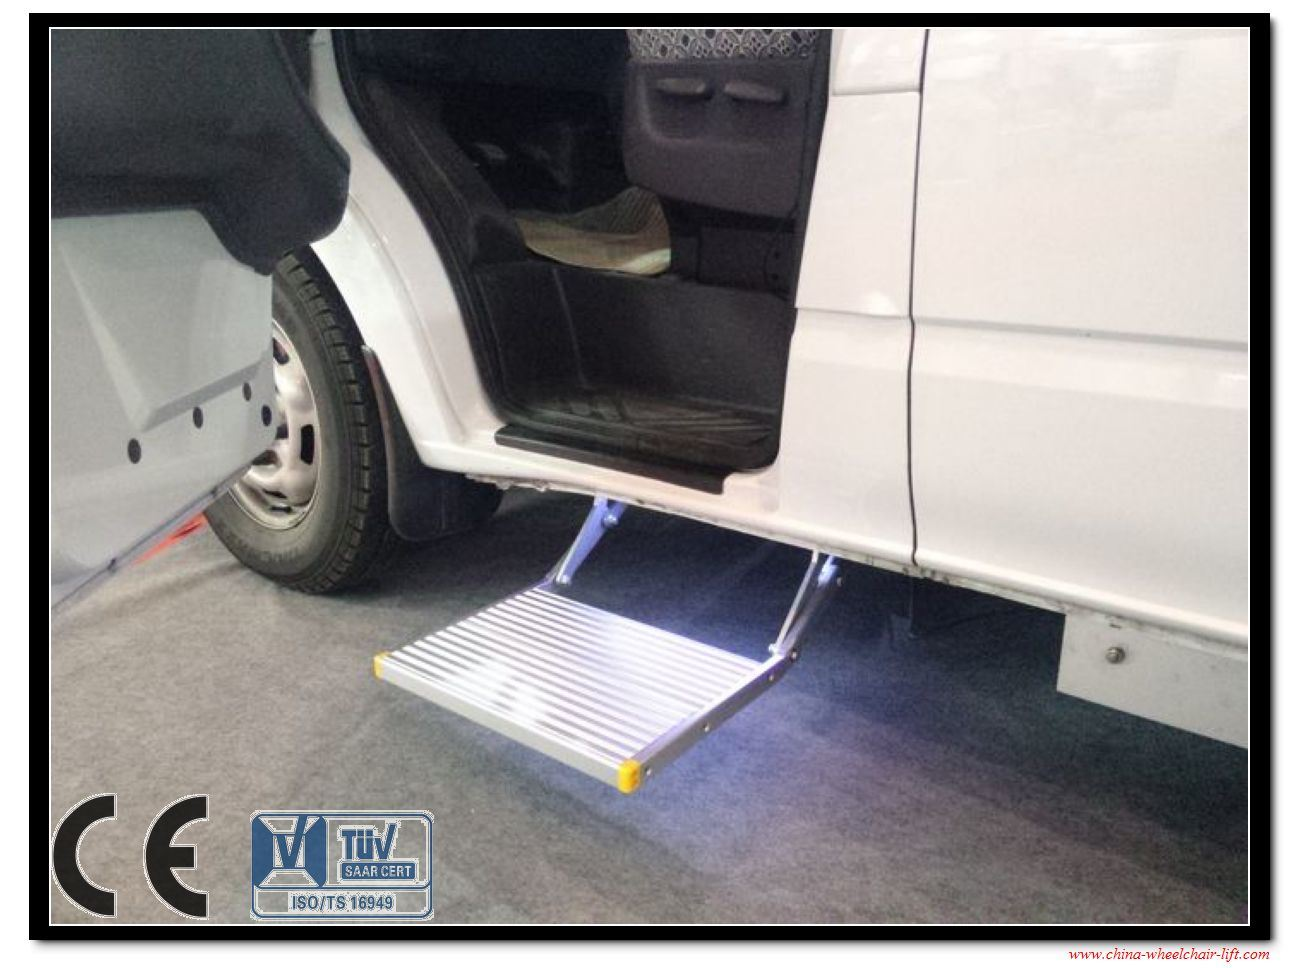 CE Electric Foldding Ladders and Electric Folding Steps for Caravan